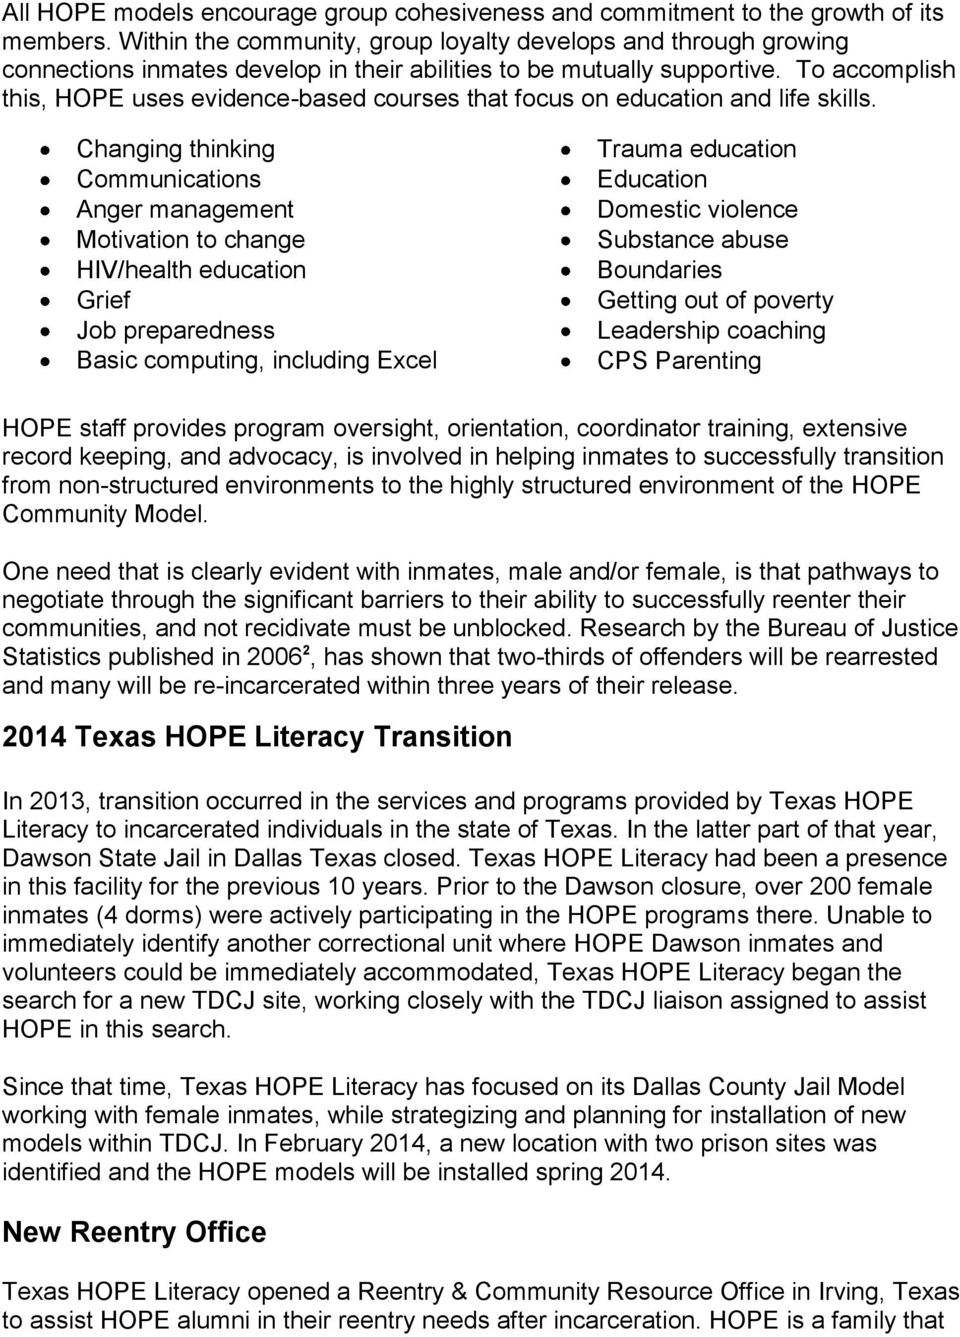 To accomplish this, HOPE uses evidence-based courses that focus on education and life skills.